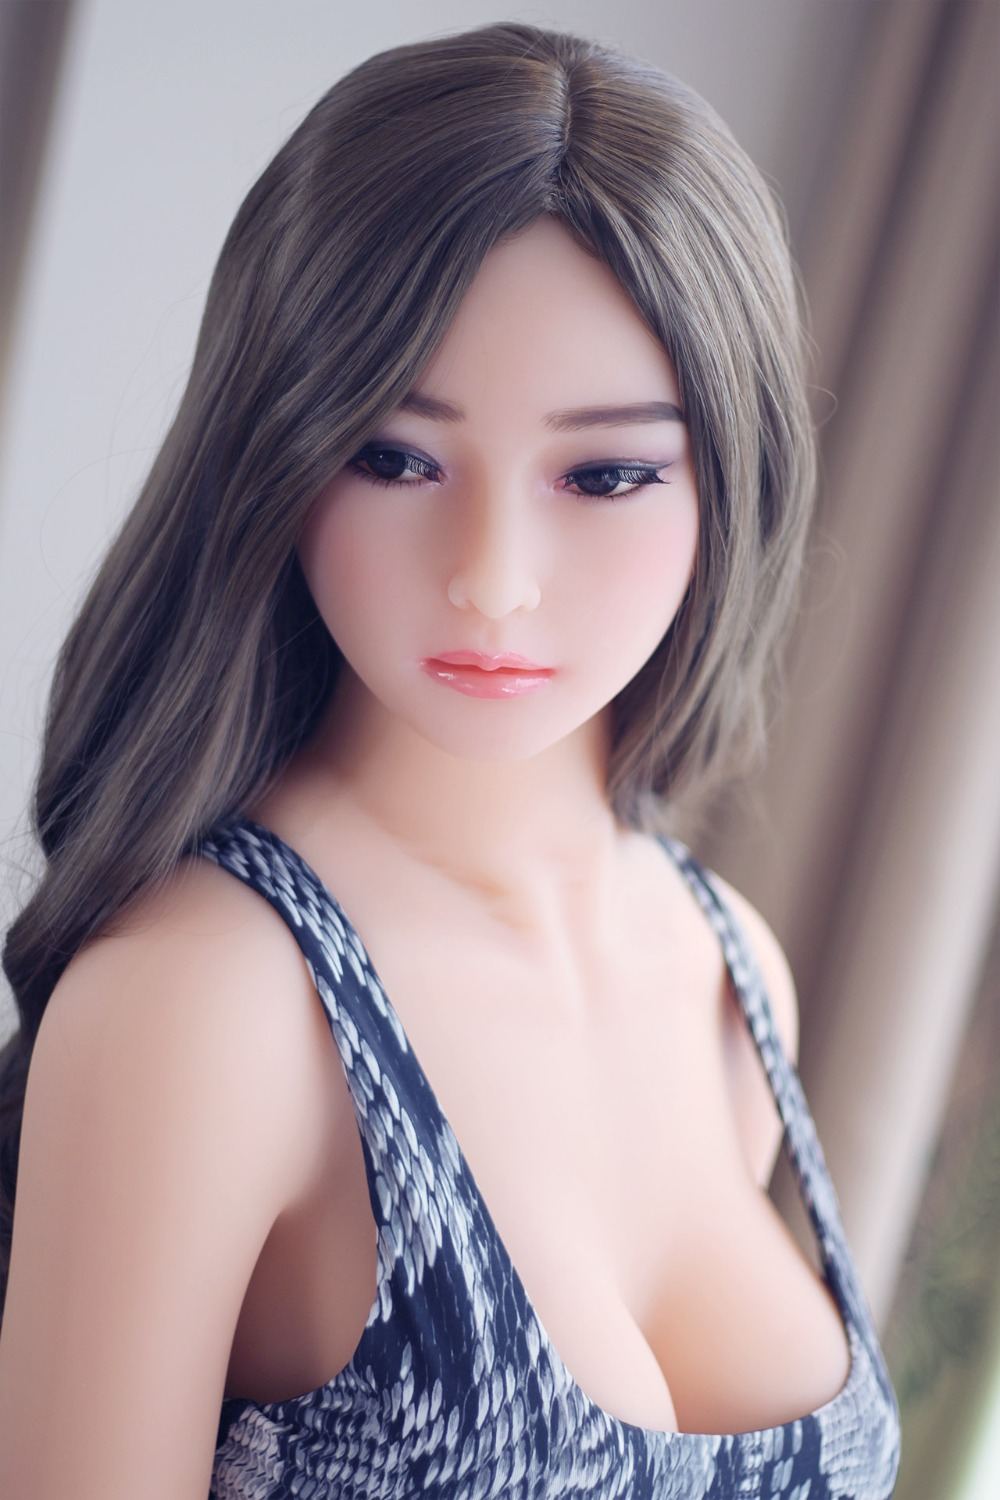 2017 real silicone sex dolls japanese anime love doll realistic toys for men big breast sexy 168cm mini vagina adult life full real silicone sex dolls japanese magic eyes anime love doll realistic ass toys for men big breast sexy vagina adult life full page 5